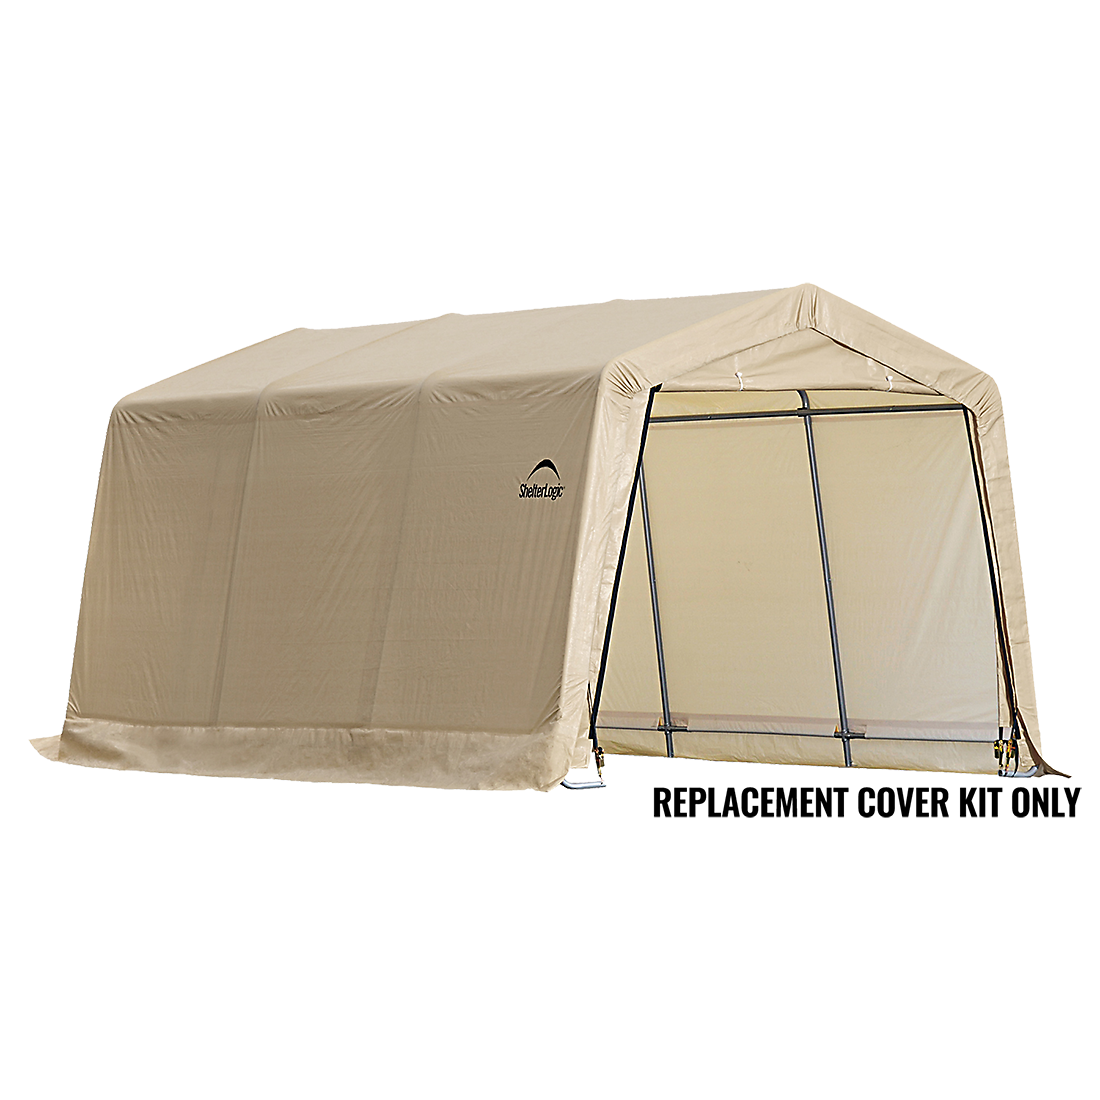 Replacement Cover Kit For The Autoshelter 174 10 X 15 X 8 Ft